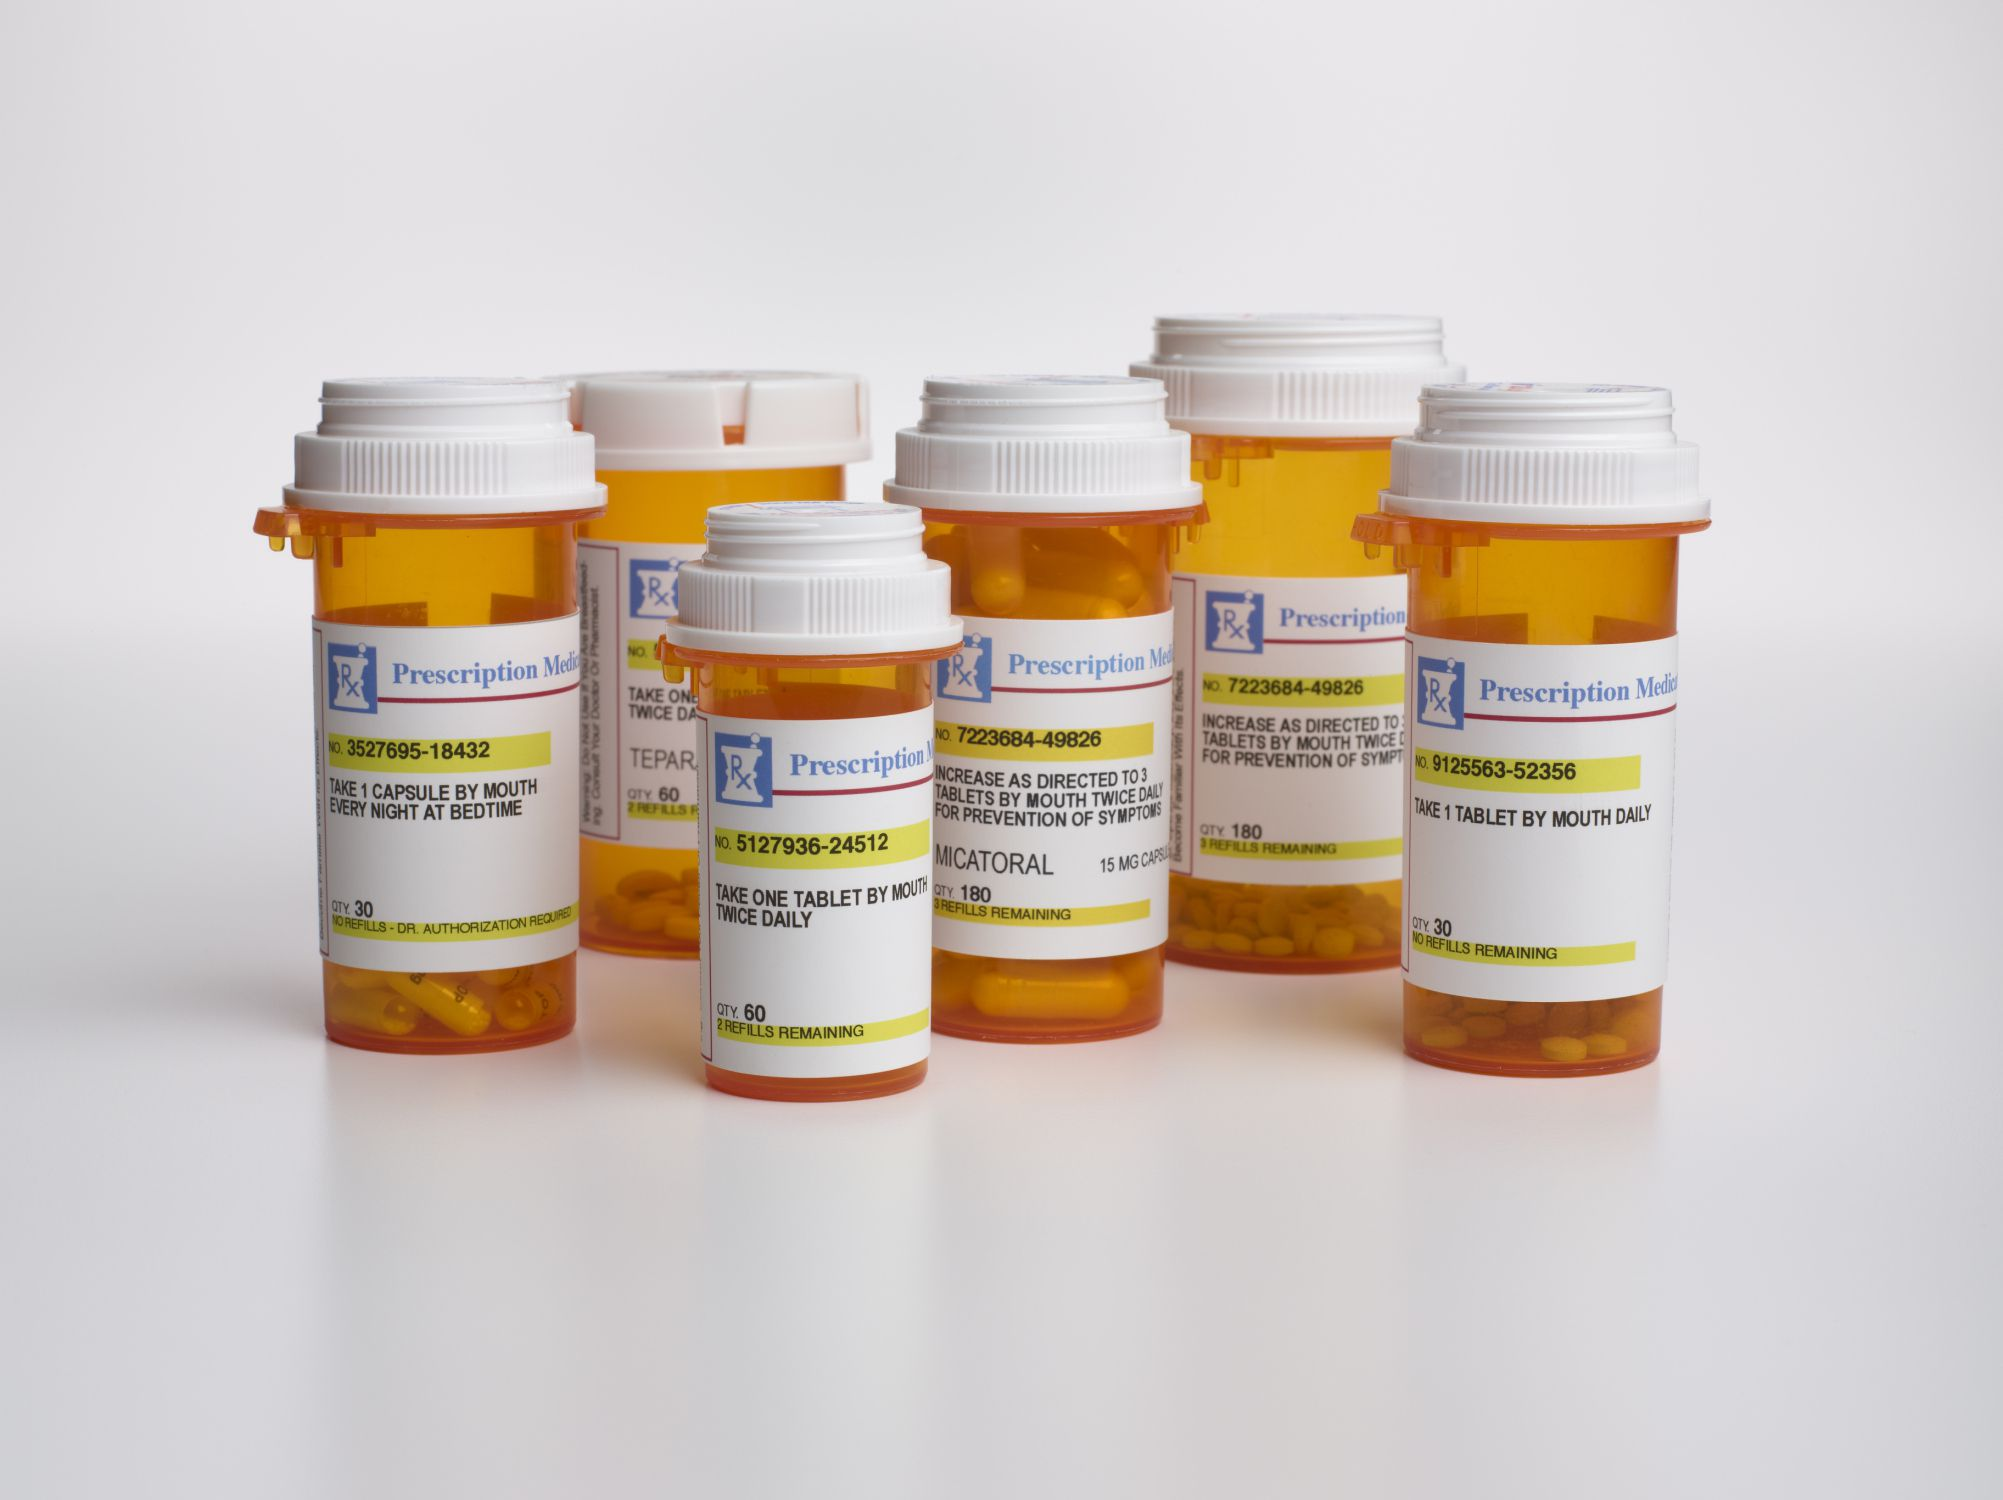 Pill bottles grouped together on a white surface against a white background